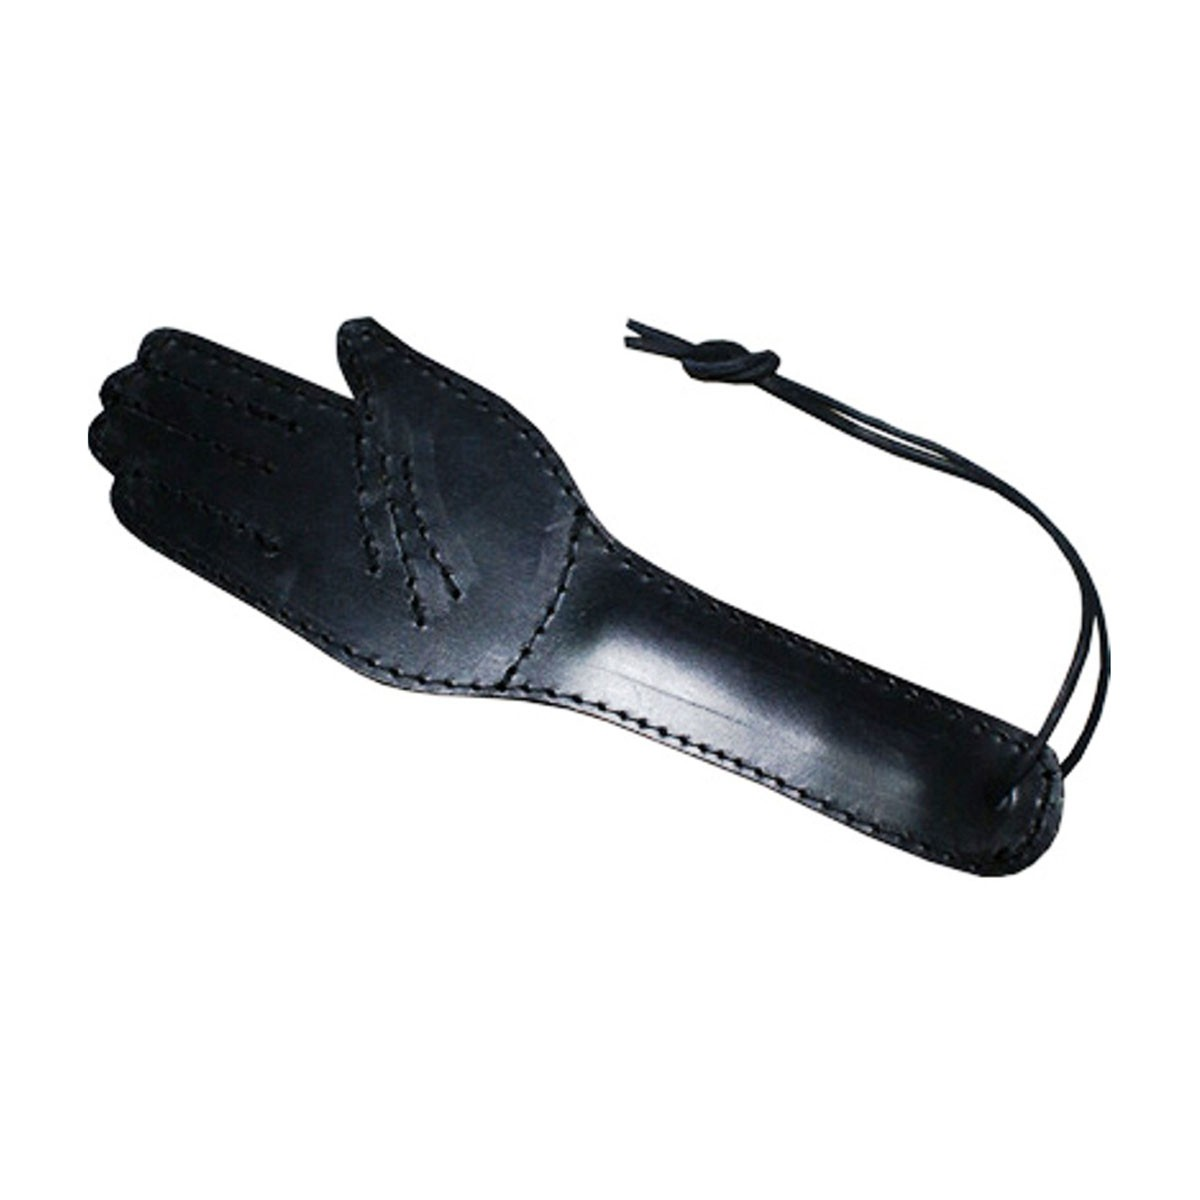 HMB-601A FREE SHIPPING LEATHER PADDLE COSTUME TRAINING HORSE WHIP BLACK COLOR